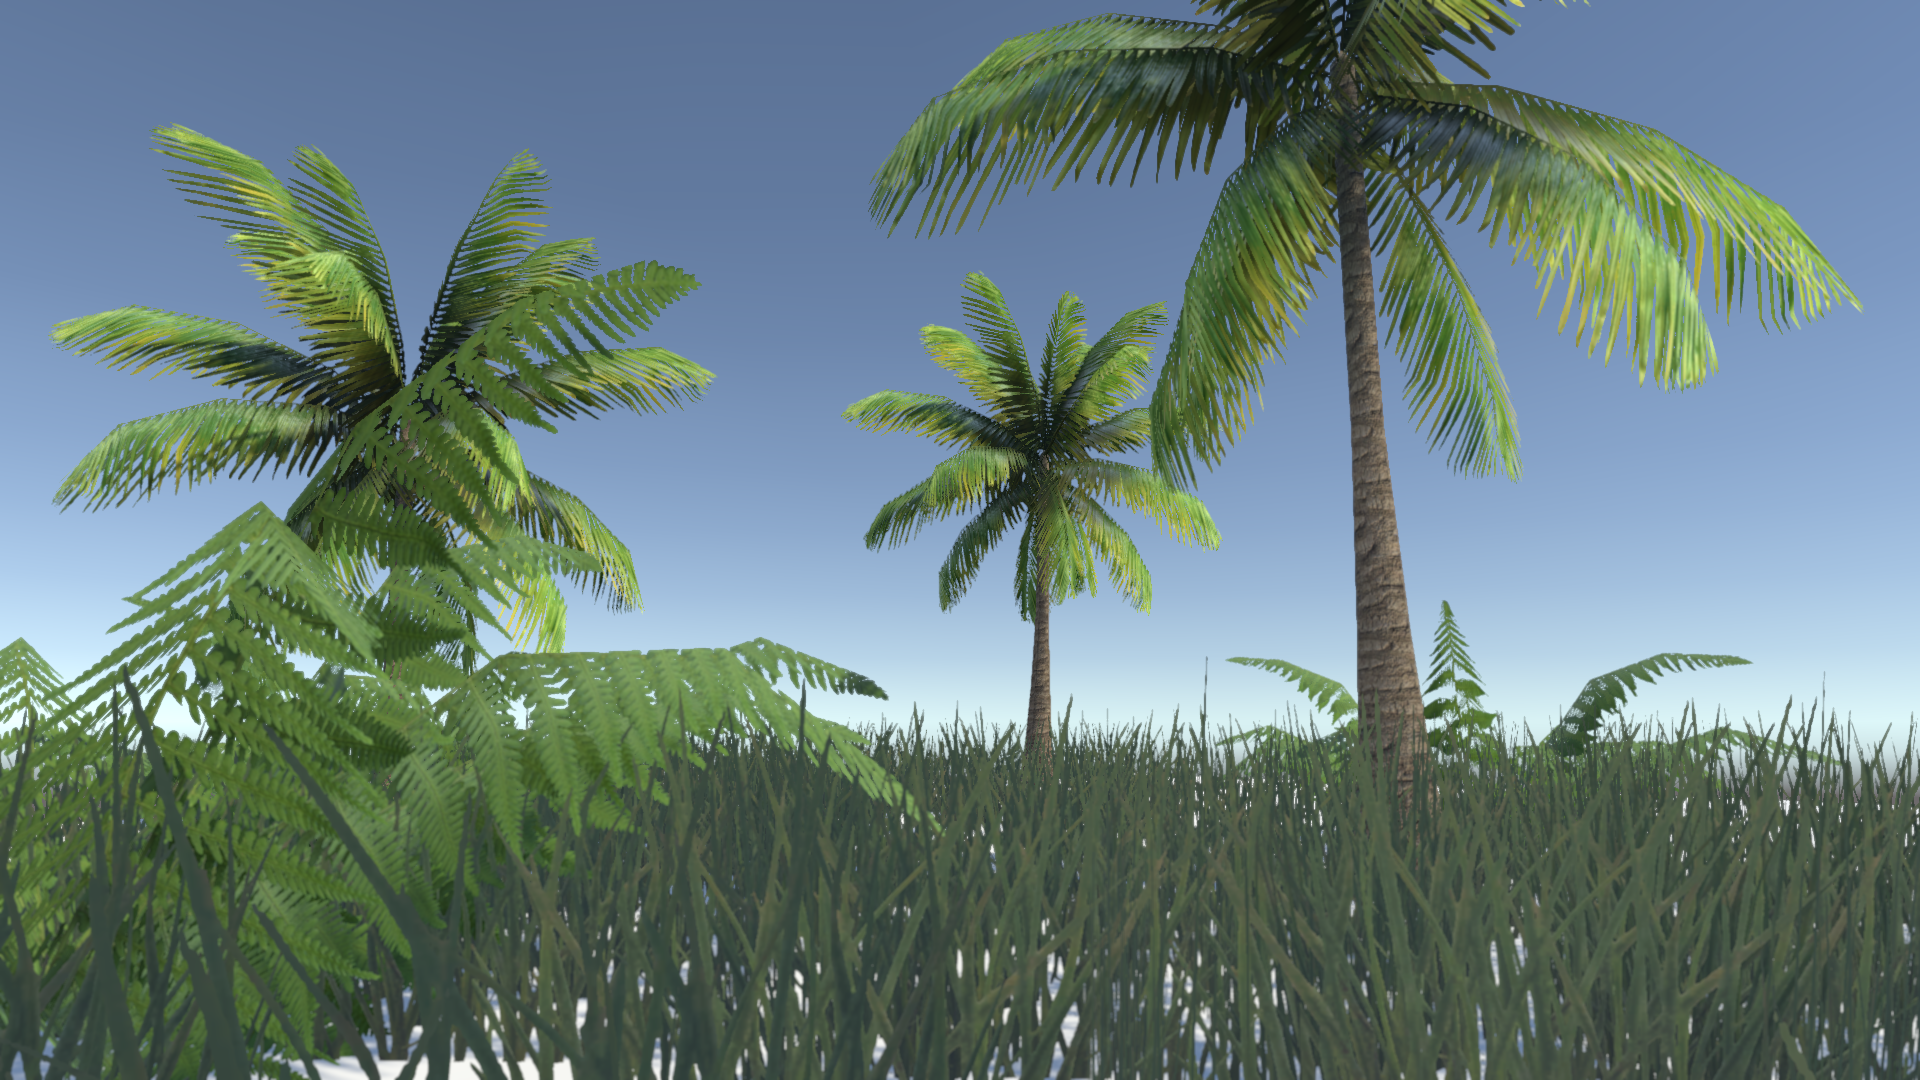 Shader] Enhanced Foliage Free  Non Terrain grass and leaves